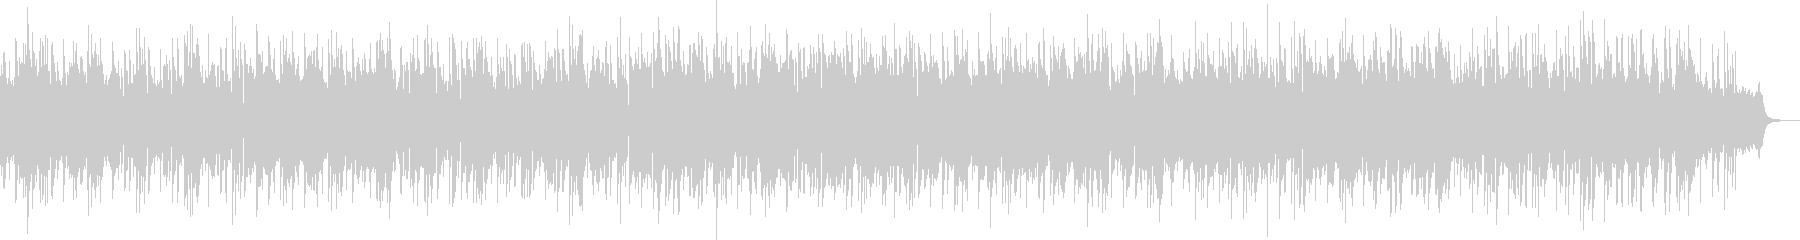 Fashionable and mysterious melody's unreproduced waveform